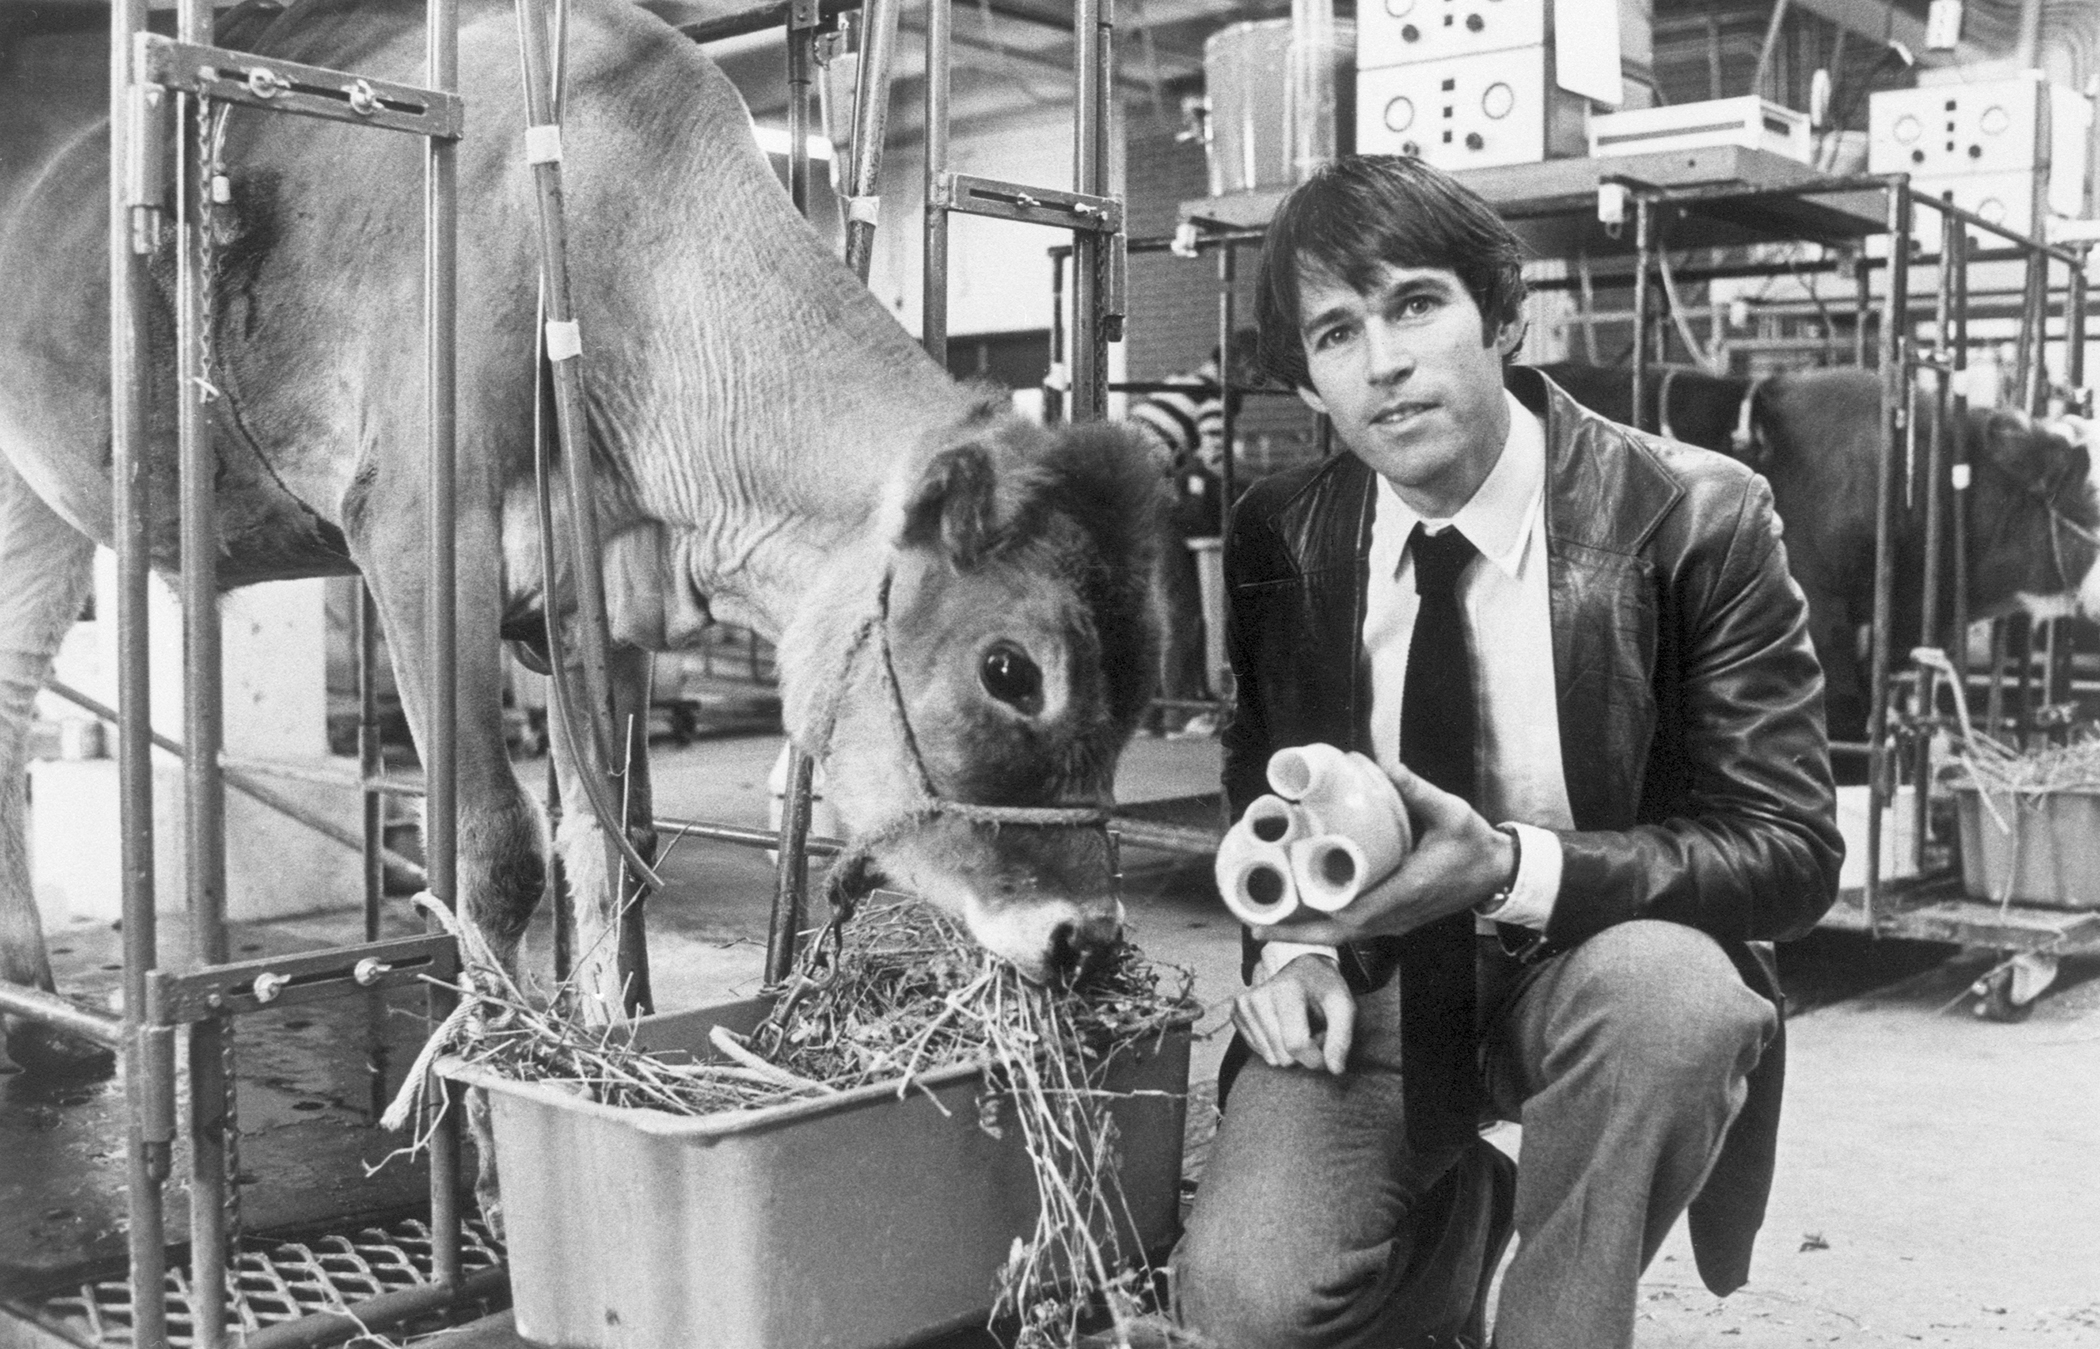 Dr. Robert K. Jarvik, who designed the University of Utah mechanical heart of plastic, is seen here last month with calf that lived for 268 days with the machine beating in the place of its heart. He holds the plastic heart device in hand, Salt Lake City, Utah, March 17, 1981.